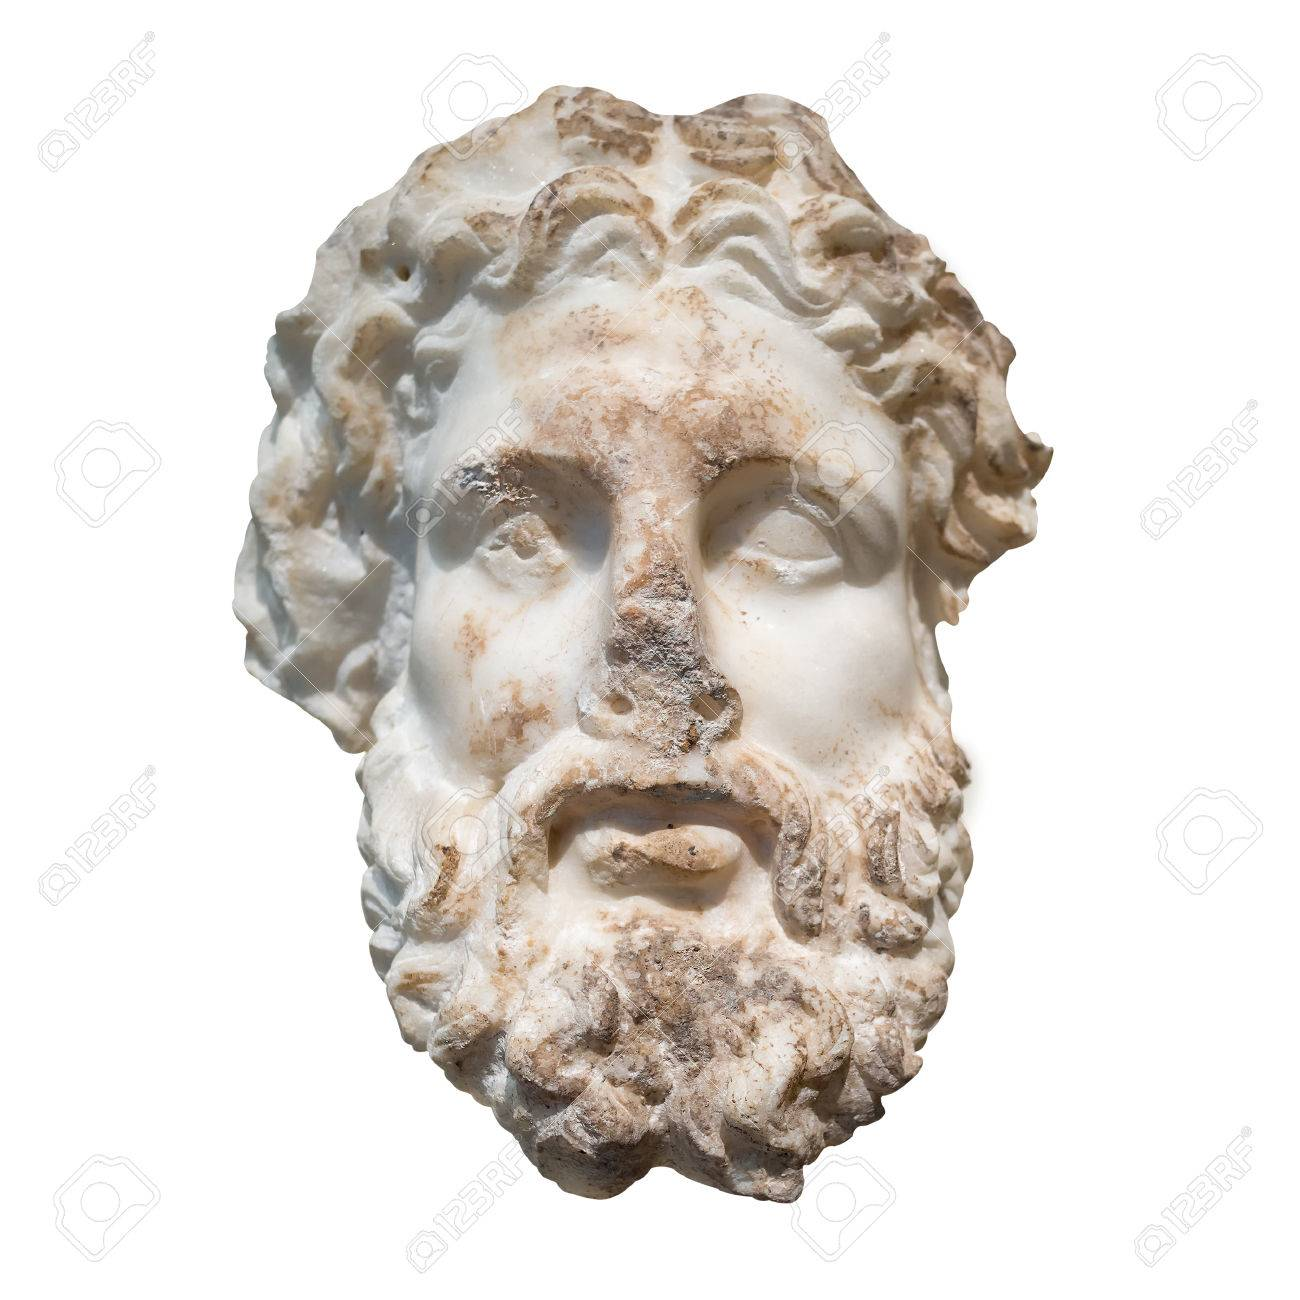 marble head of the greek god zeus isolated on a white background